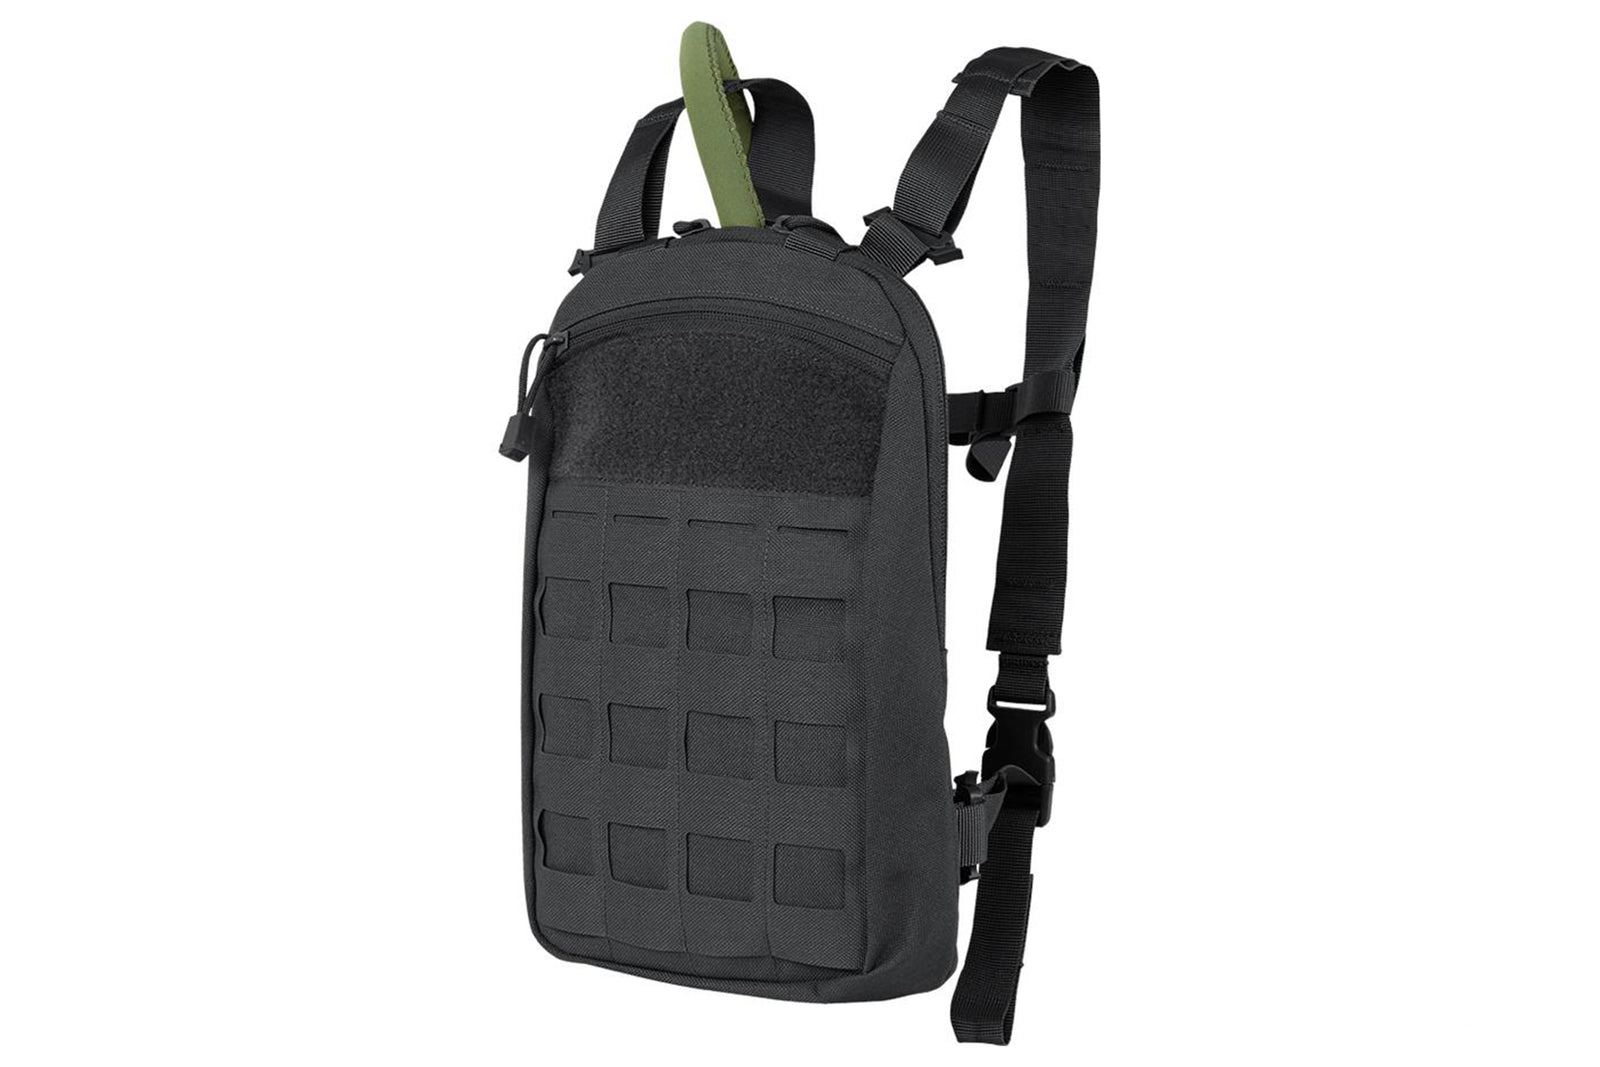 Condor LCS Tidepool Hydration Carrier